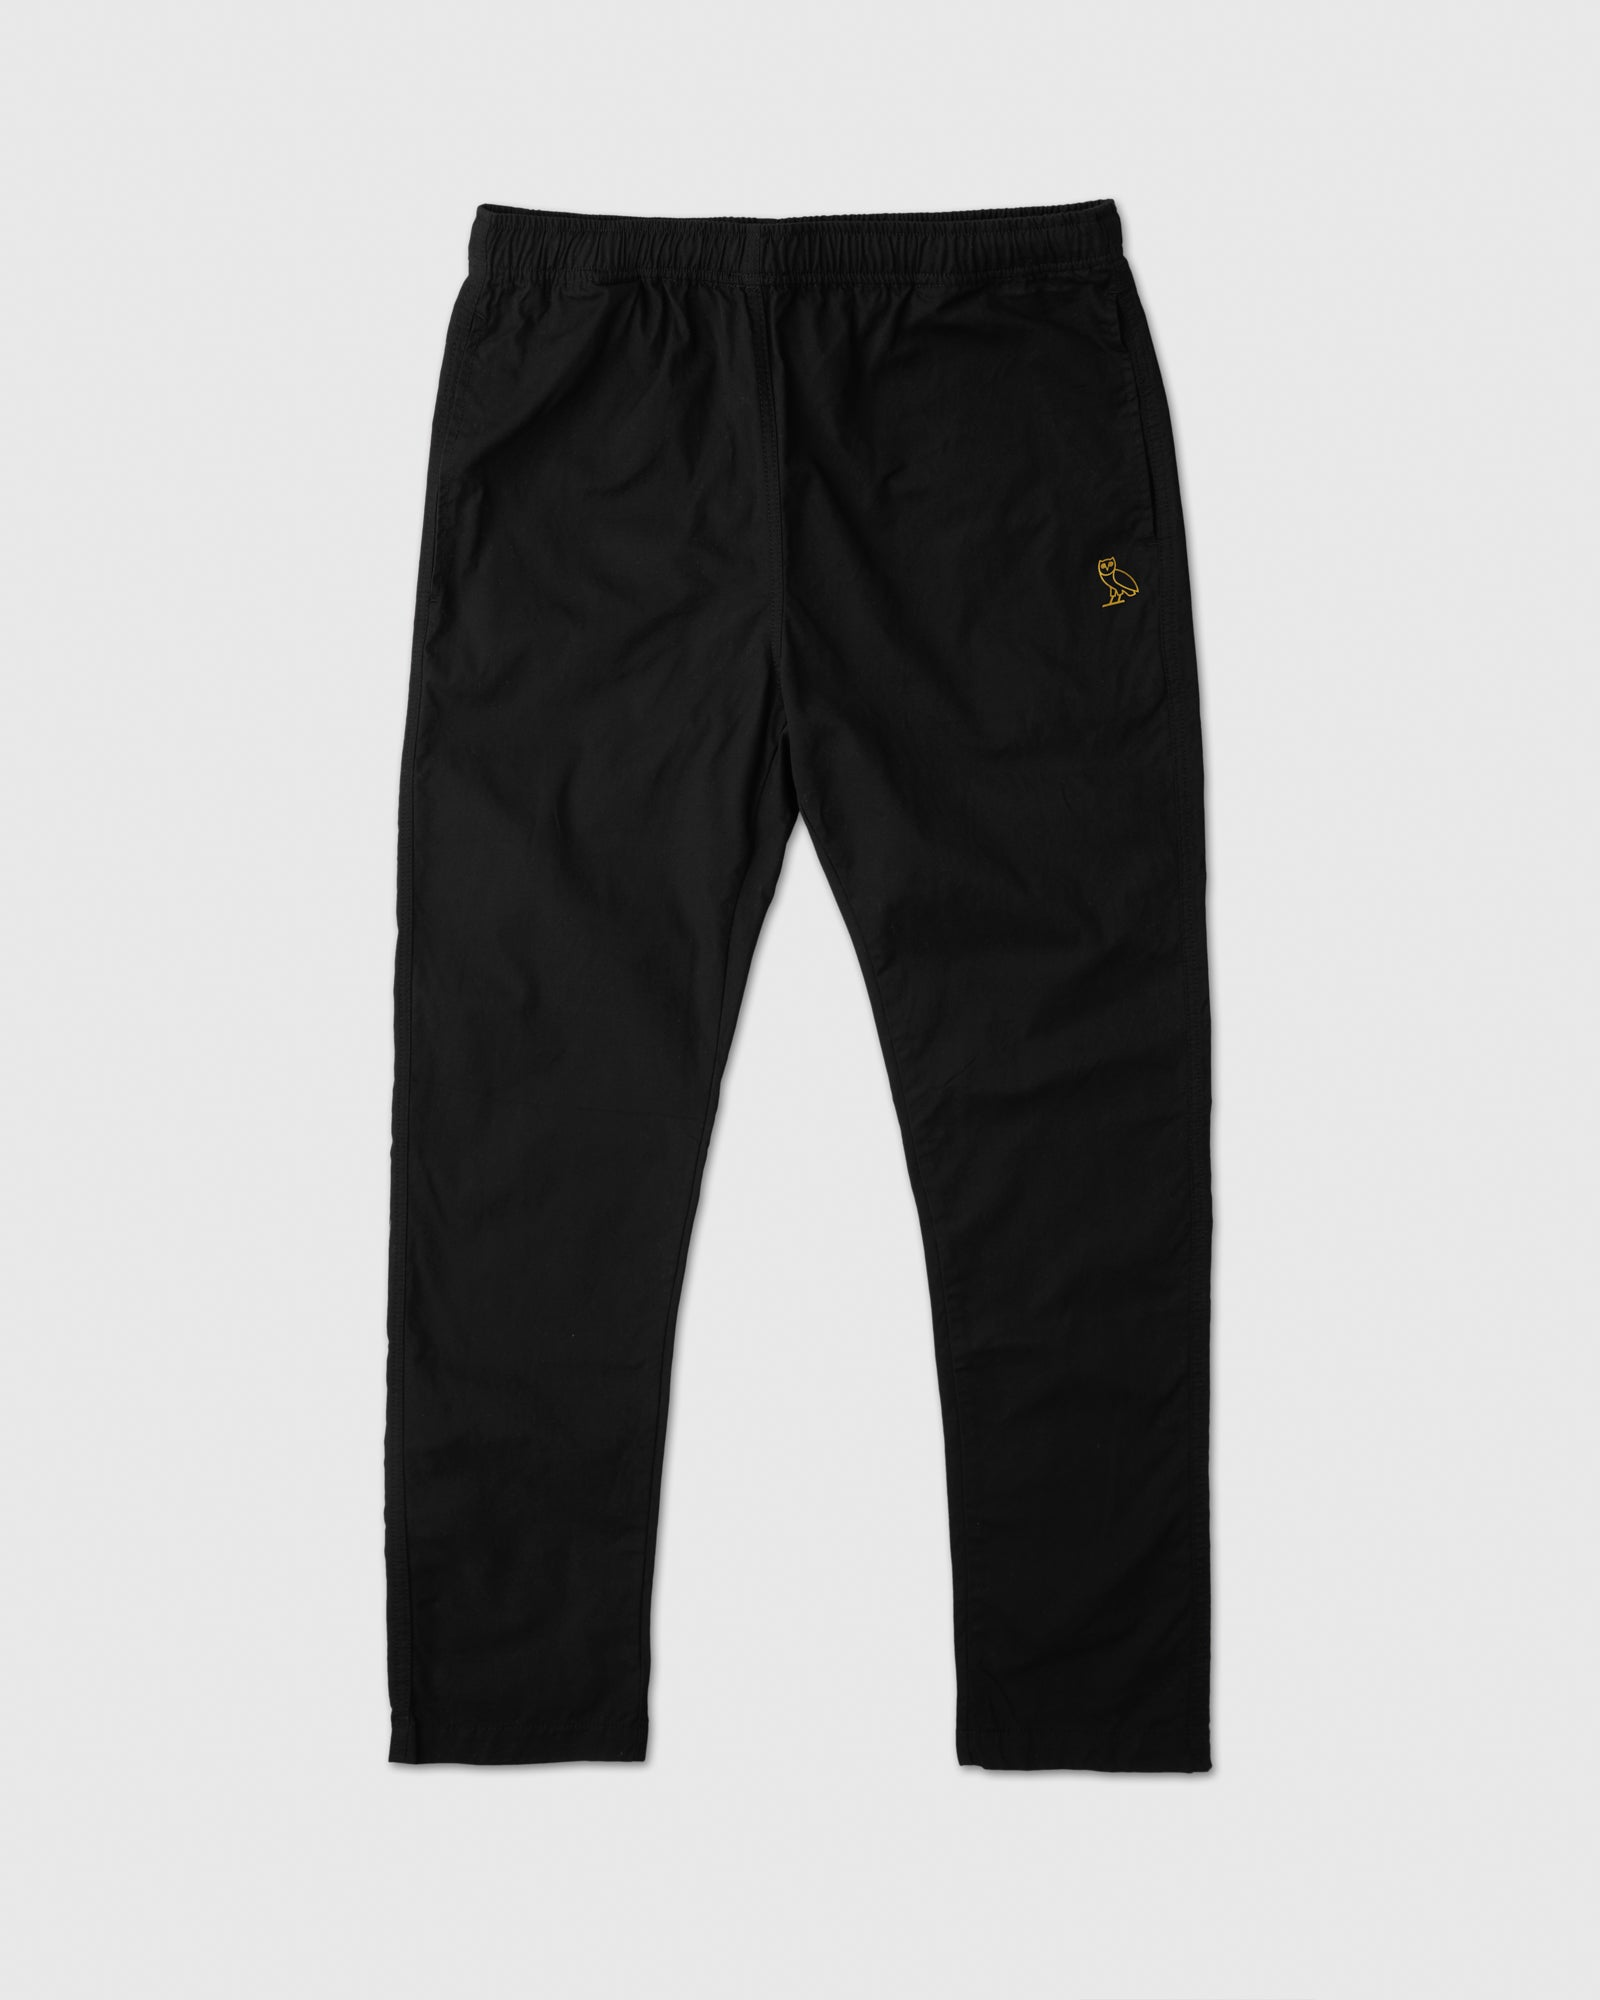 LIGHTWEIGHT WOVEN PANT - BLACK IMAGE #1